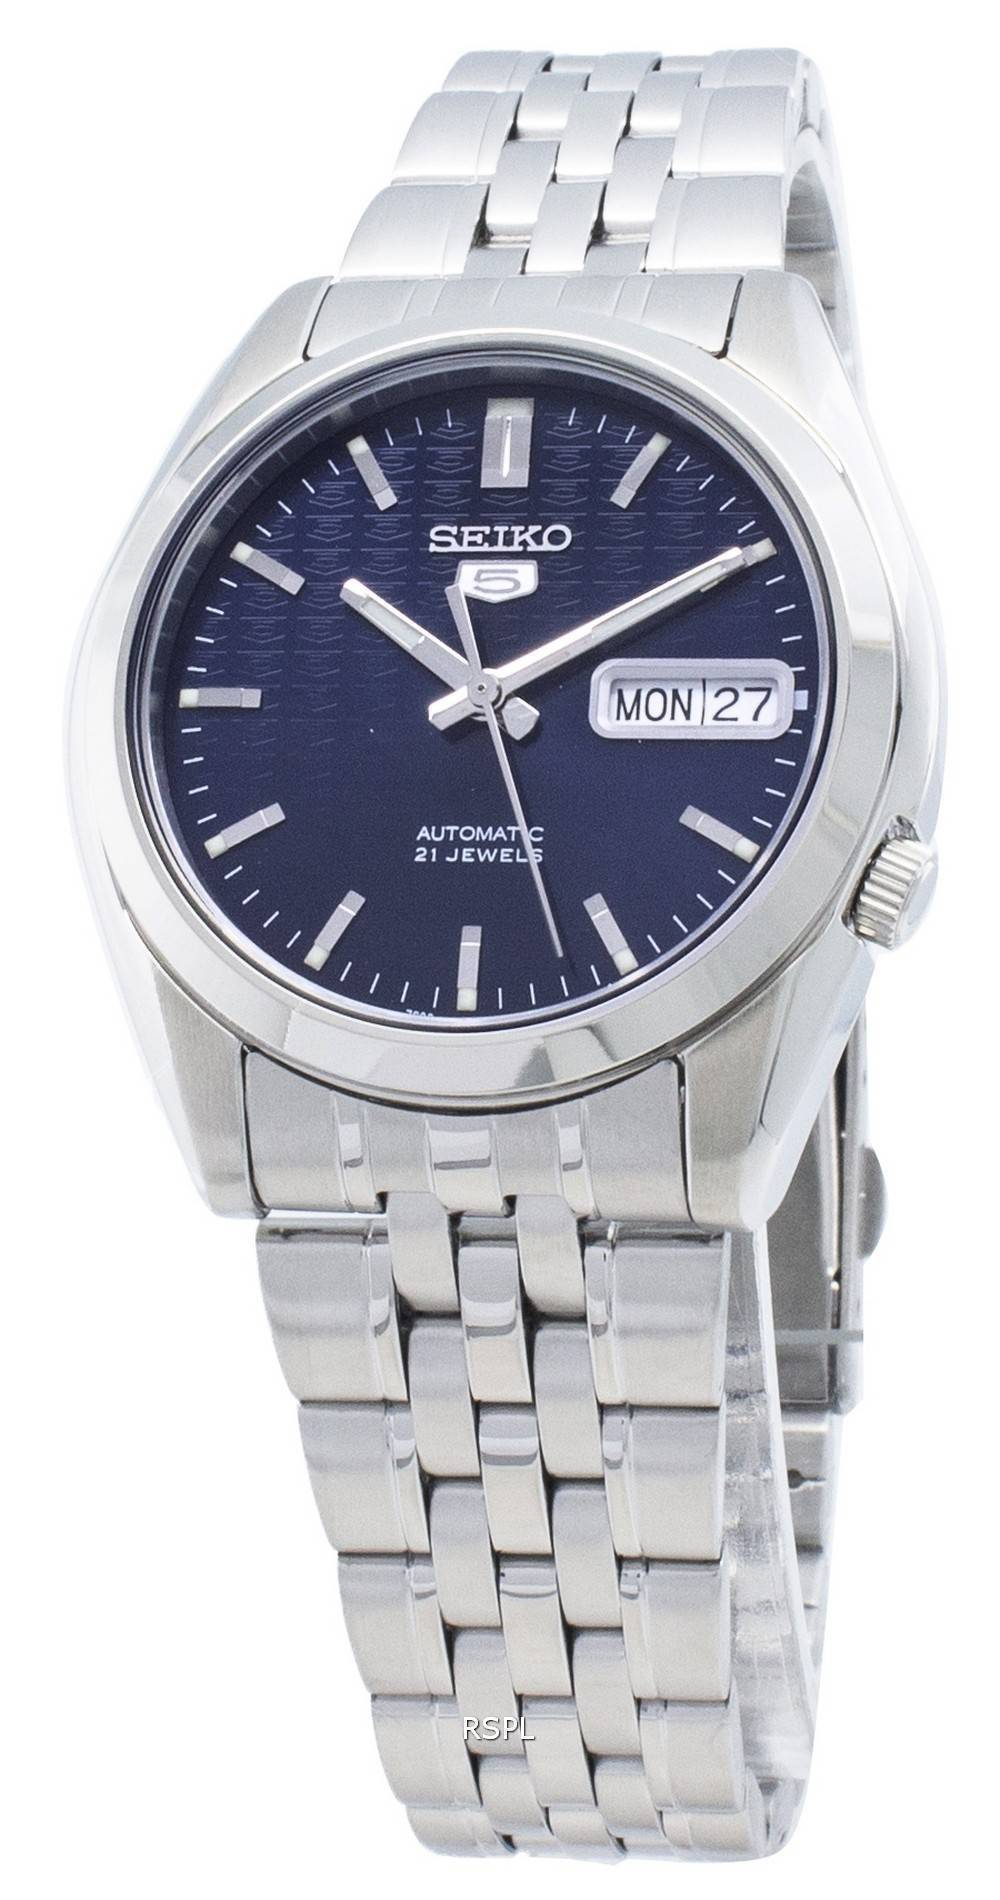 Refurbished Seiko 5 Automatic SNK357 SNK357K1 SNK357K Analog Men's Watch